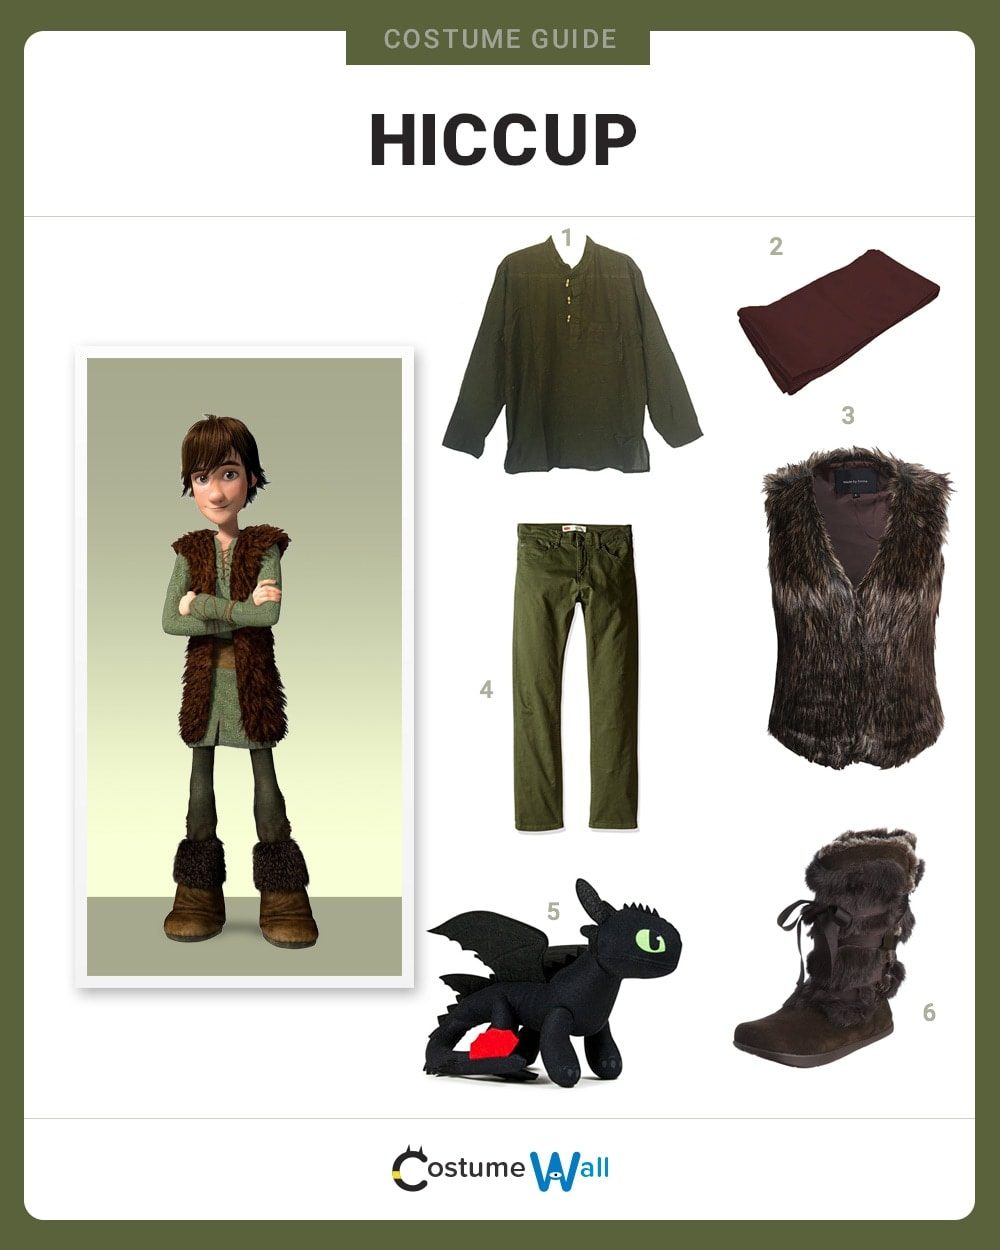 Hiccup Costume Guide